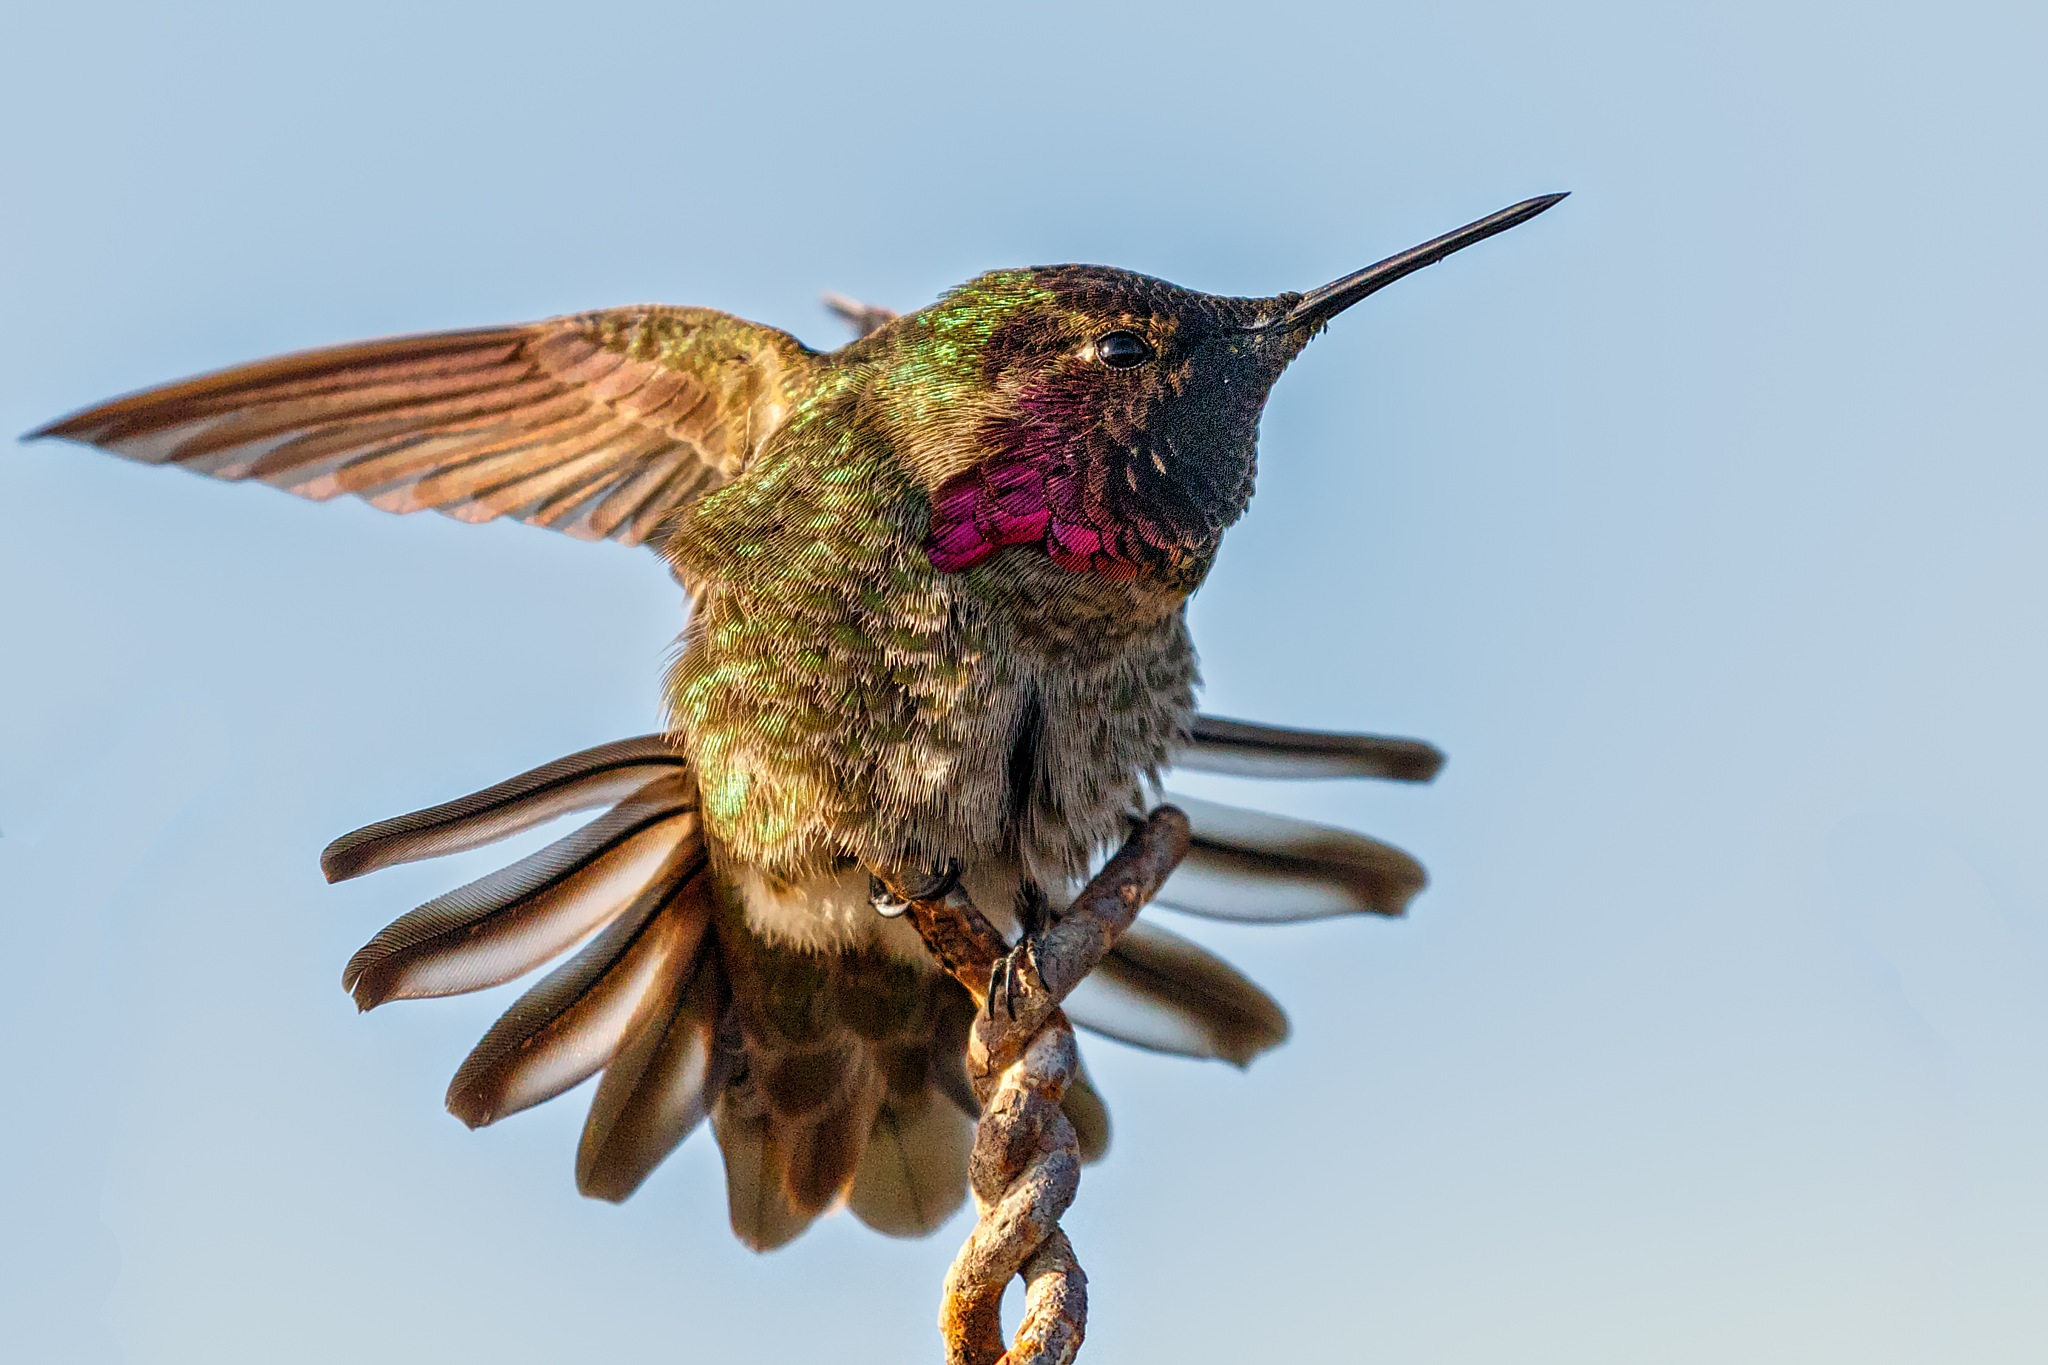 On the fence (Anna's hummingbird in a stretch) by Boris Droutman